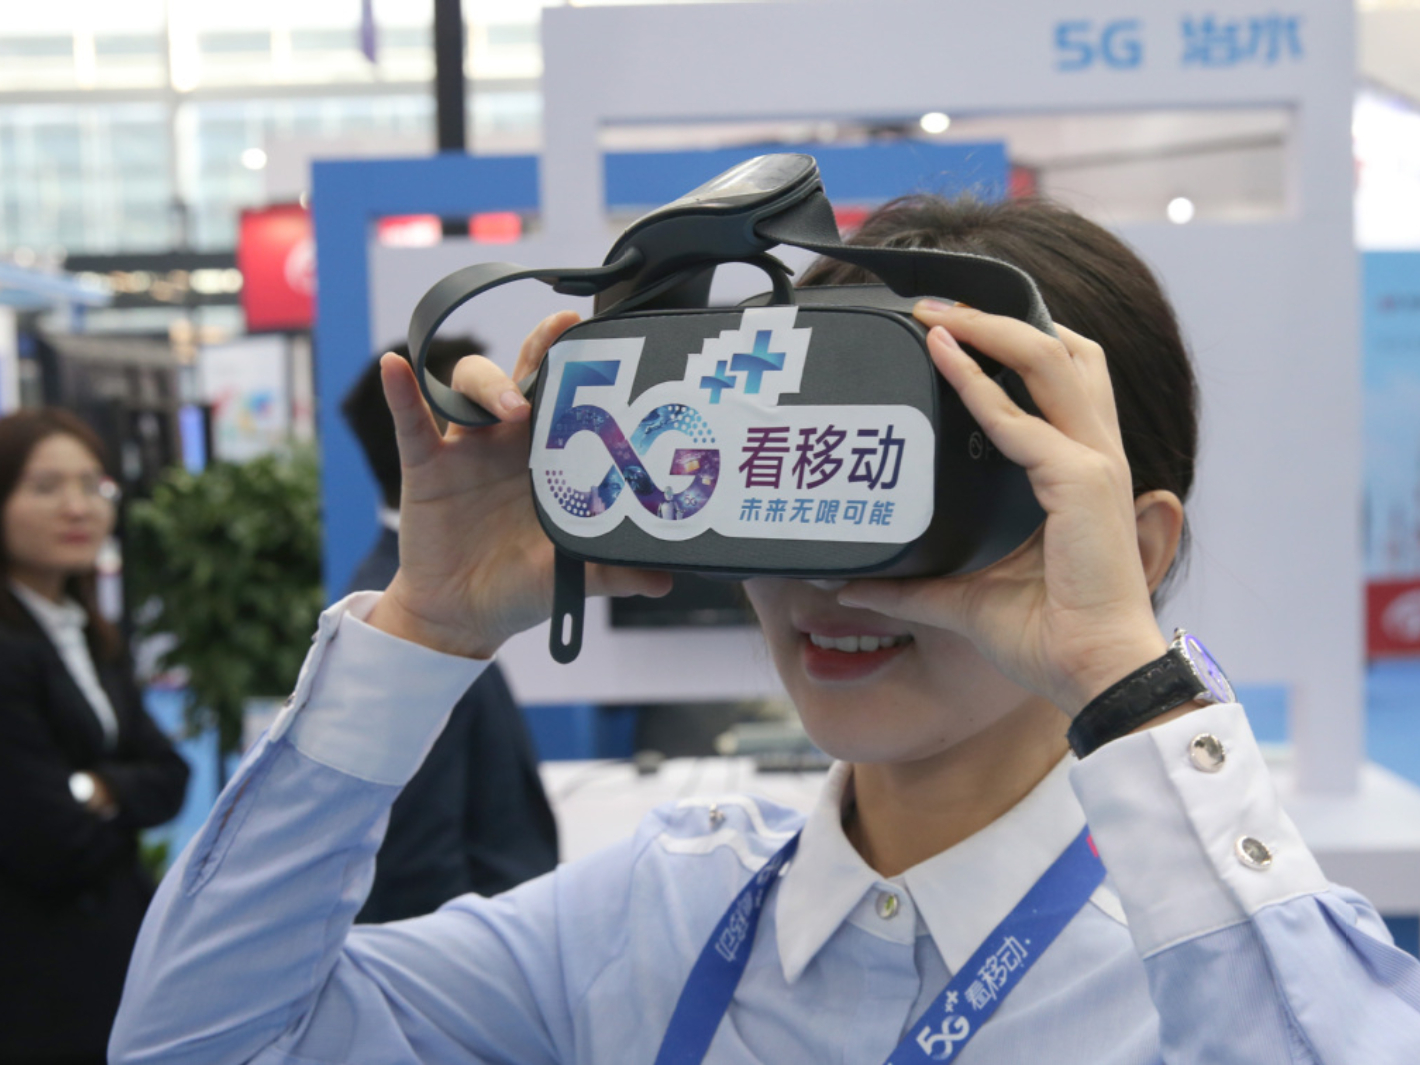 5G footprint widens in China